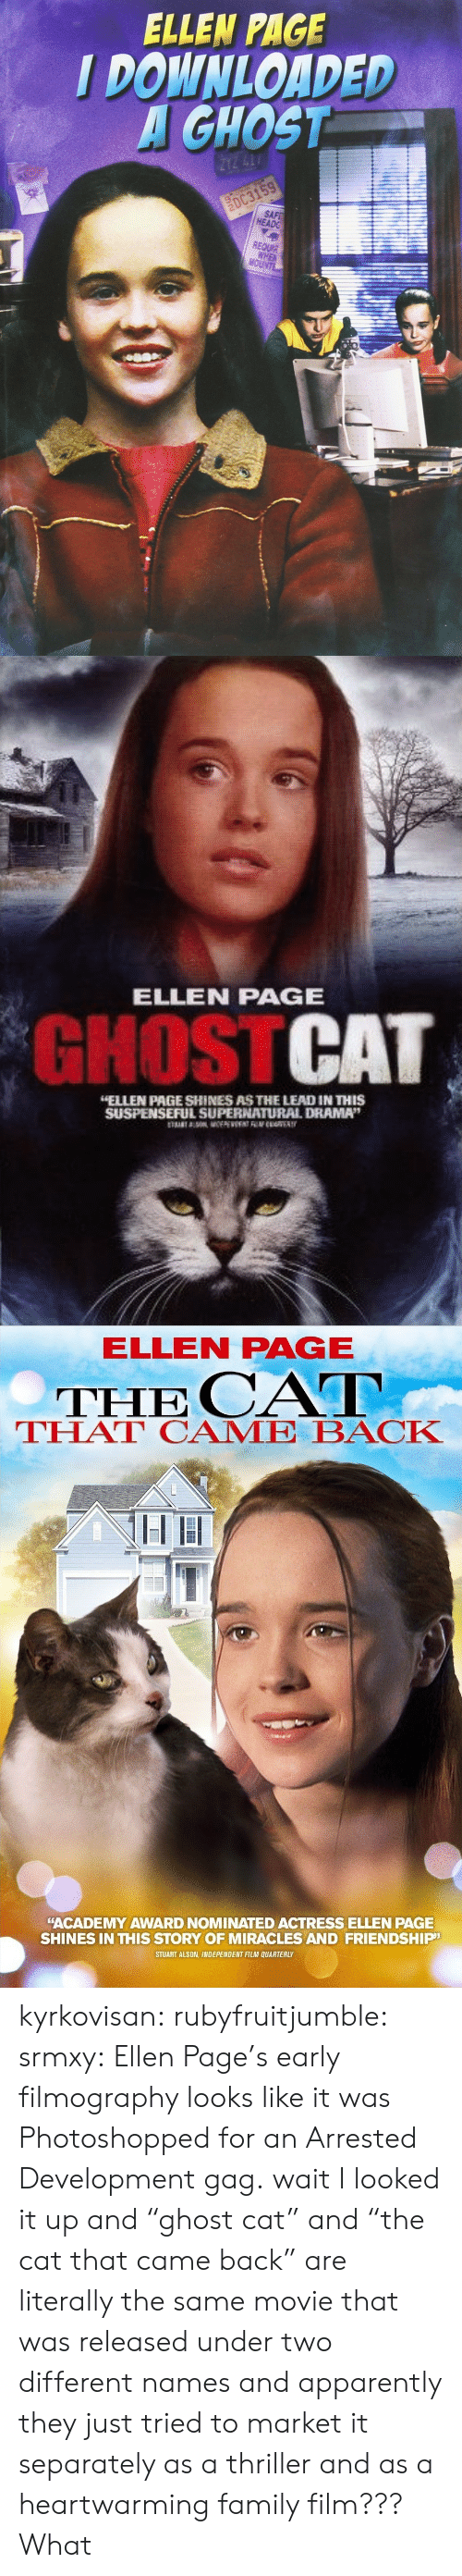 "came back: ELLEN PAGE  I DOWNLOADED  GHOST  HEADG  REQUA  MO   ELLEN PAGE  GHOSTCAT  ELLEN PAGE SHINES AS THE LEAD IN THIS  SUSPENSEFUL SUPERNATUURAL DRAMA""   ELLEN PAGE  THE CAT  THAT CAME BACK  ""ACADEMY AWARD NOMINATED ACTRESS ELLEN PAGE  SHINES IN THIS STORY OF MIRACLES AND FRIENDSHIP  STUART ALSON, INDEPENDENT FILM QUARTERLY kyrkovisan:  rubyfruitjumble:   srmxy:  Ellen Page's early filmography looks like it was Photoshopped for an Arrested Development gag.  wait I looked it up and ""ghost cat"" and ""the cat that came back"" are literally the same movie that was released under two different names and apparently they just tried to market it separately as a thriller and as a heartwarming family film???   What"